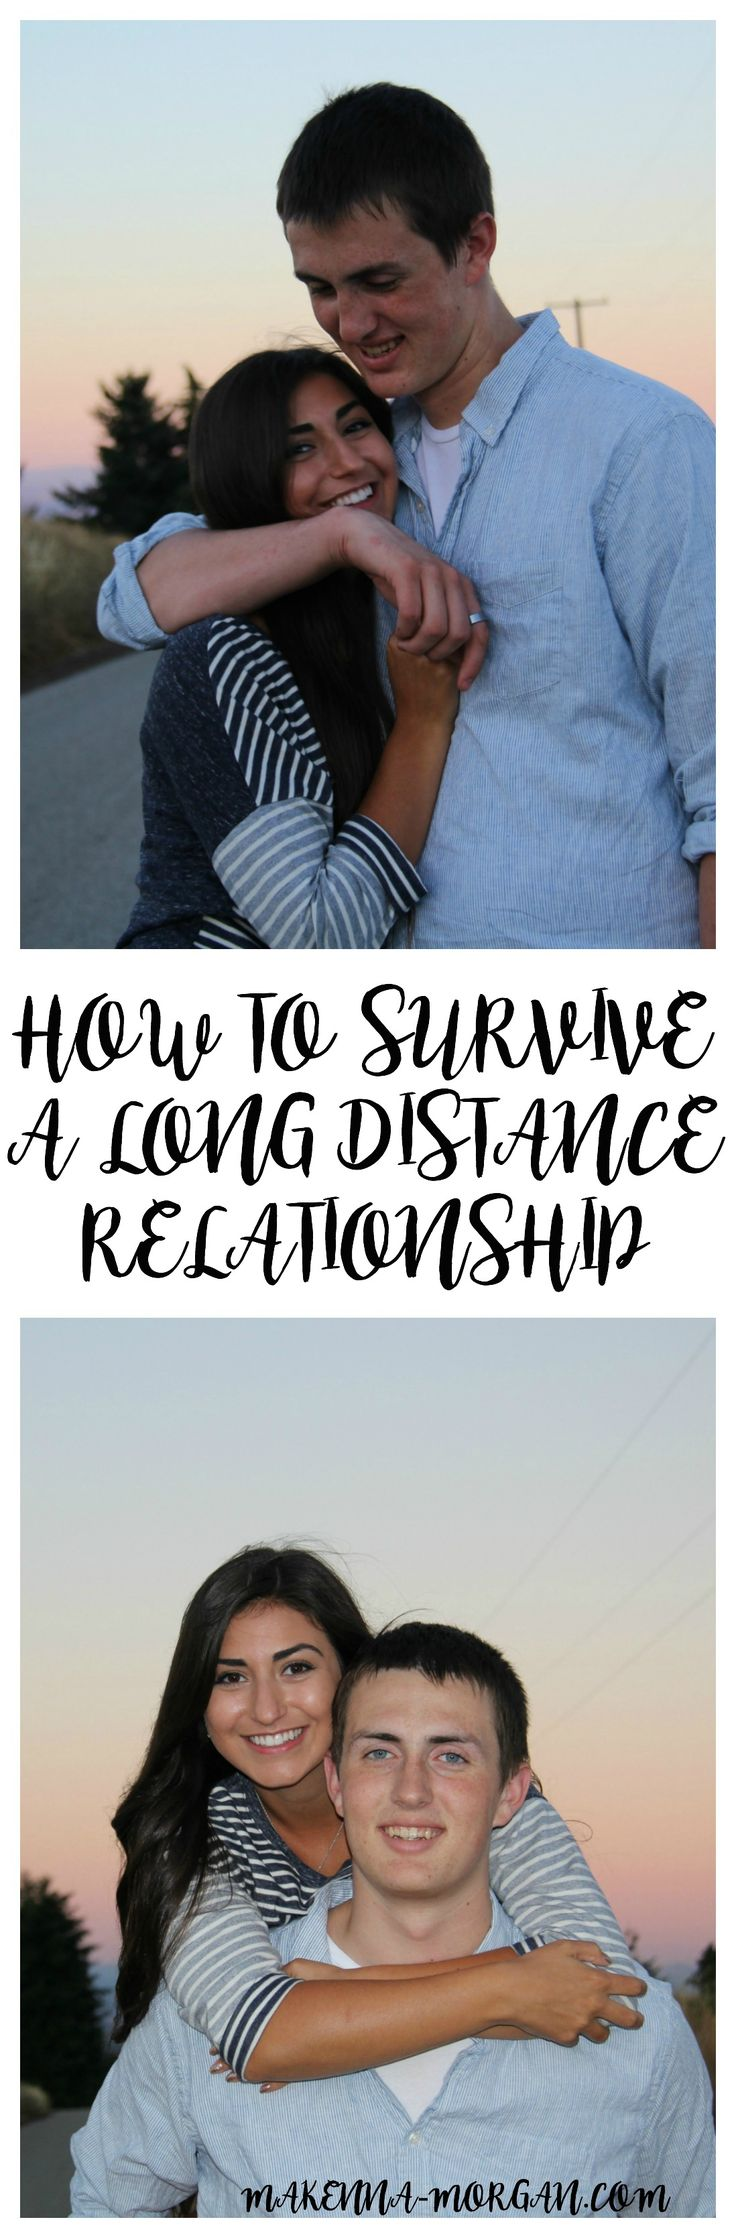 how to keep from going crazy in a long distance relationship